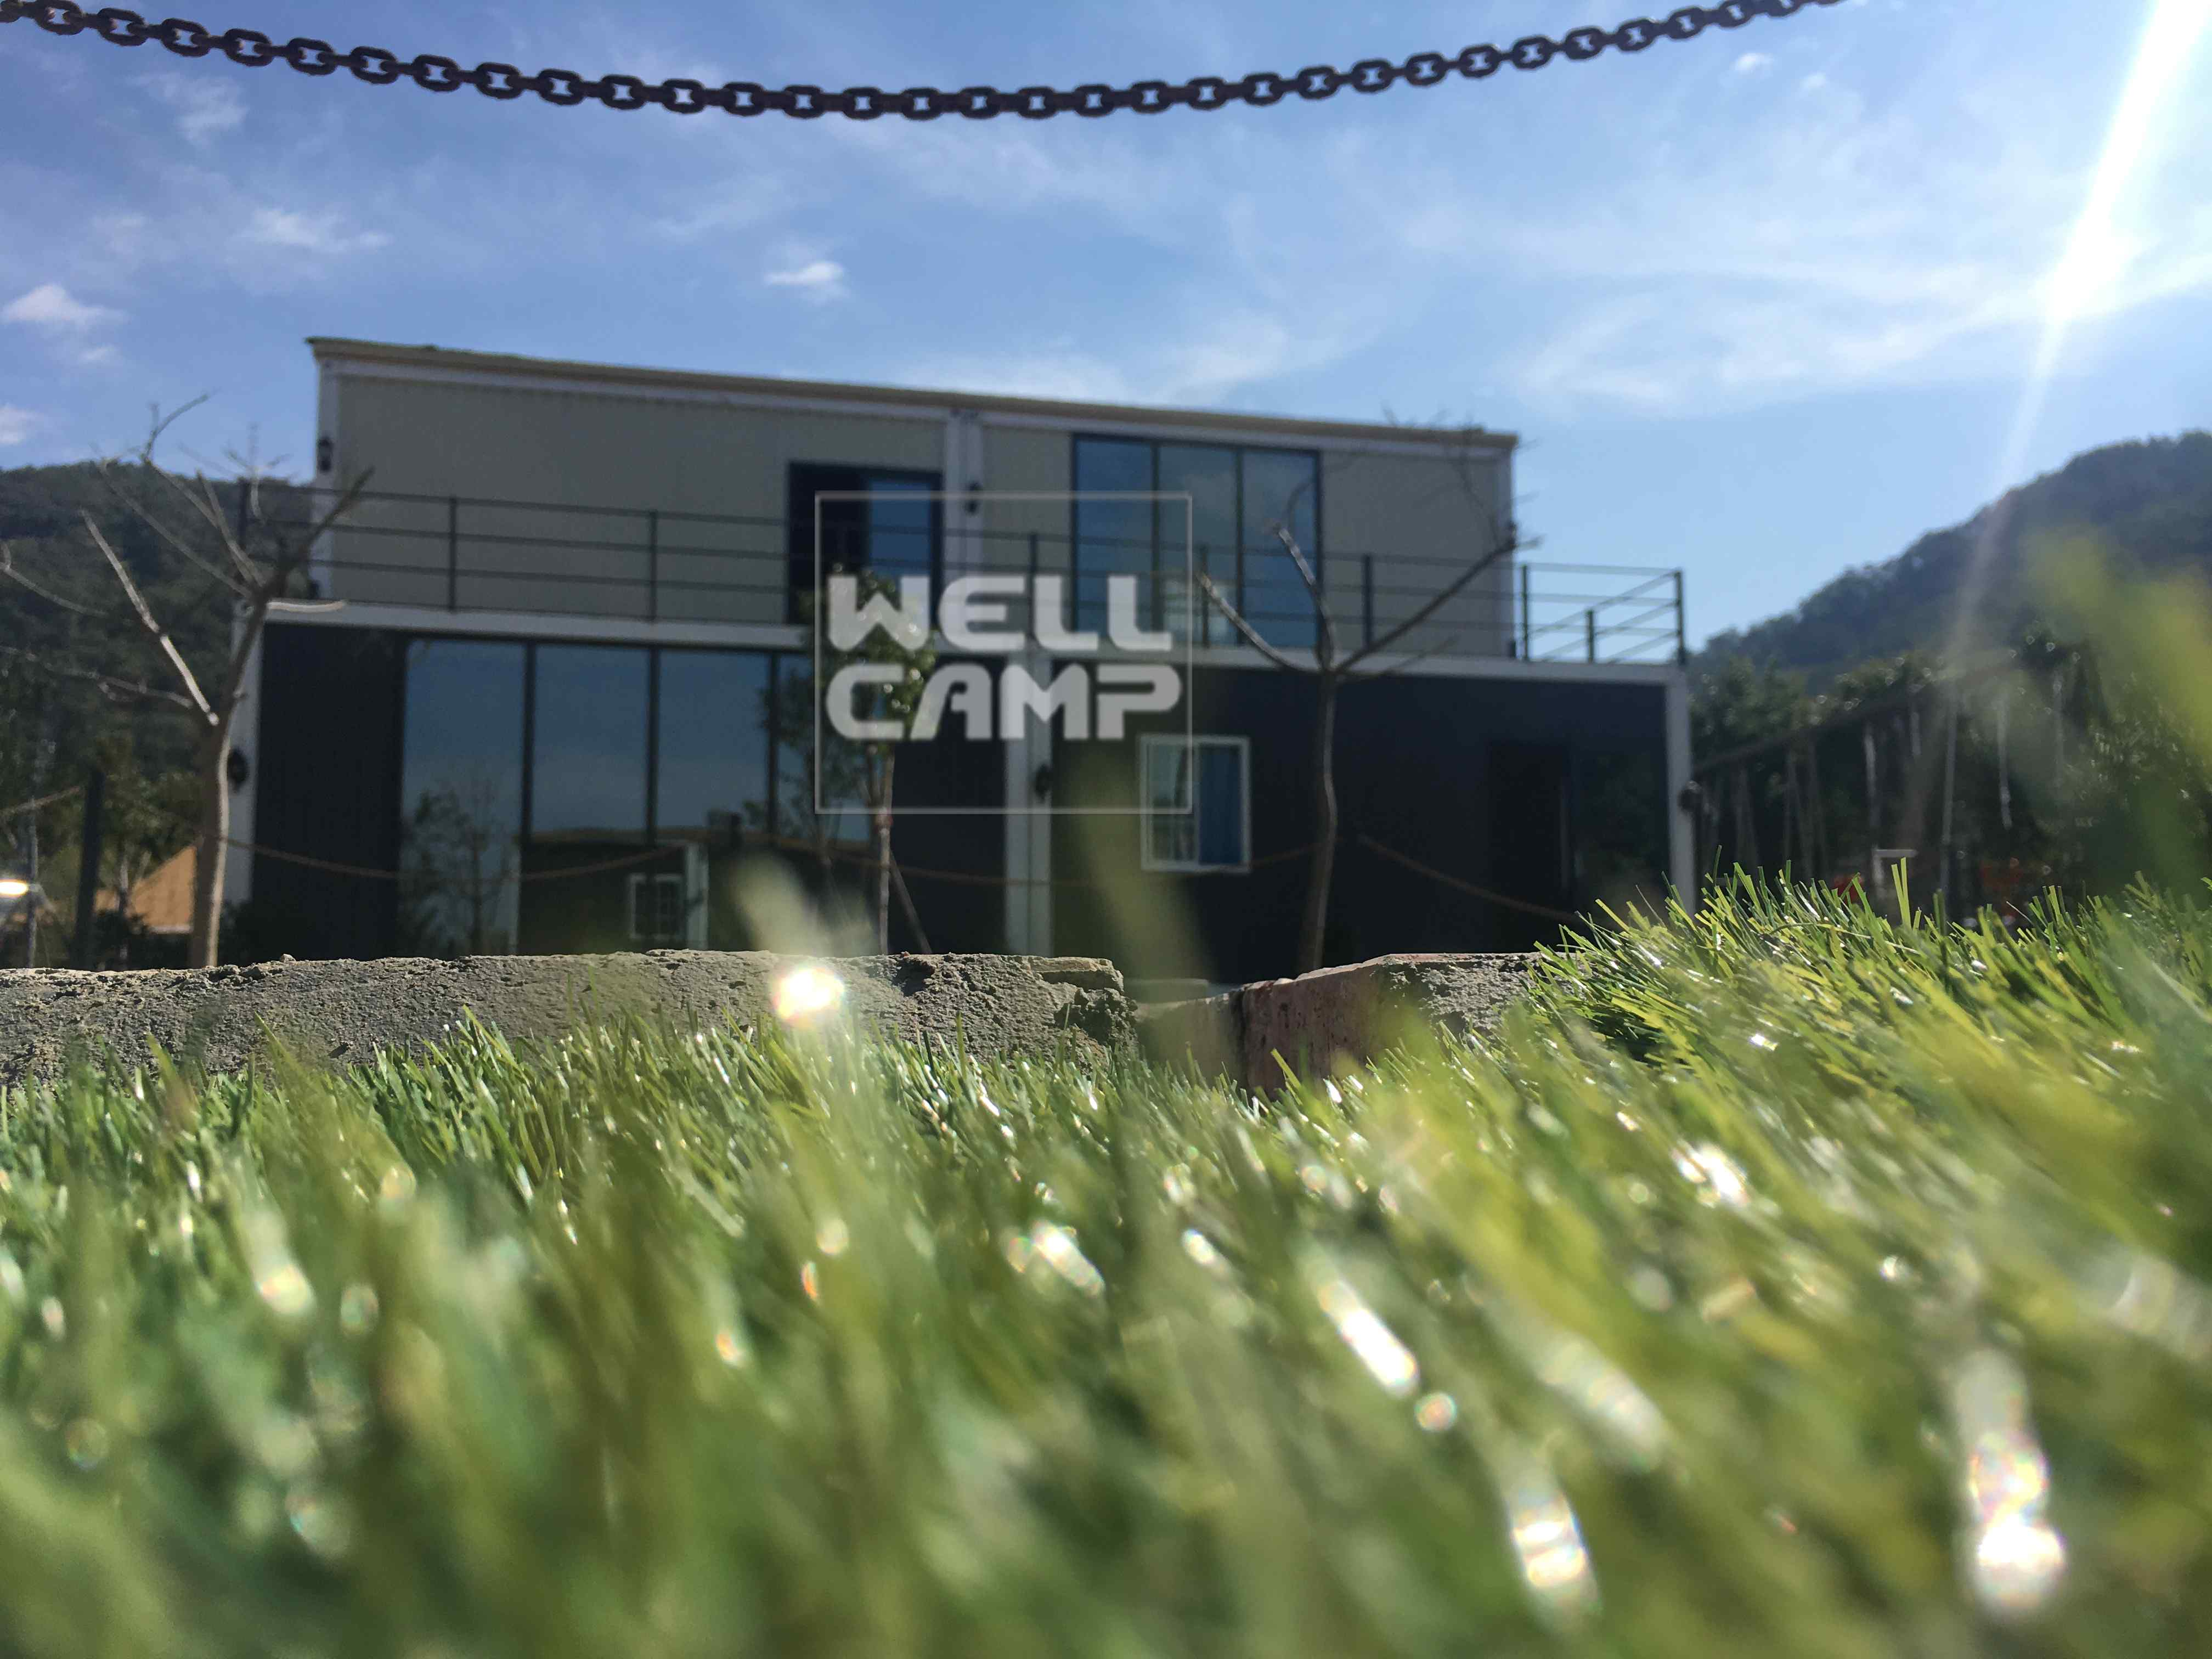 WELLCAMP Easy Installation Two Floors Prefab Container House for Resort Hotel V-13 Container Villa image23